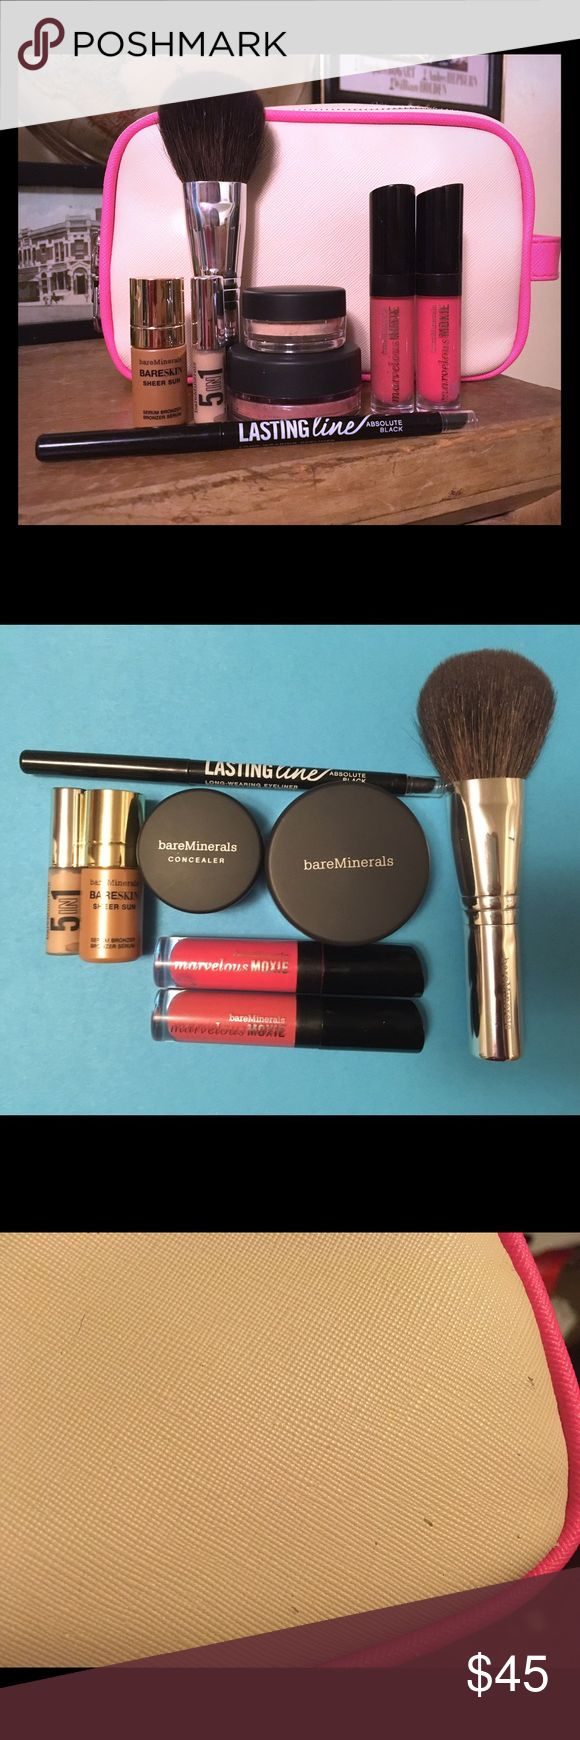 GREAT 🎁! BareMinerals Ultimate Holiday Bundle! One amazing makeup bag with eight new products and a full size brush! Comes with a large two zippered pocket makeup bag (there is a little imperfection which is in the third picture and a dark mark on the inside of one of the pockets). Includes NWT products: two Marvelous Moxies travel size lip glosses, a full size blush in Flair, concealer in Summer Bisque, full size Lasting Line eyeliner in Absolute Black, a full size Full Flawless Face…